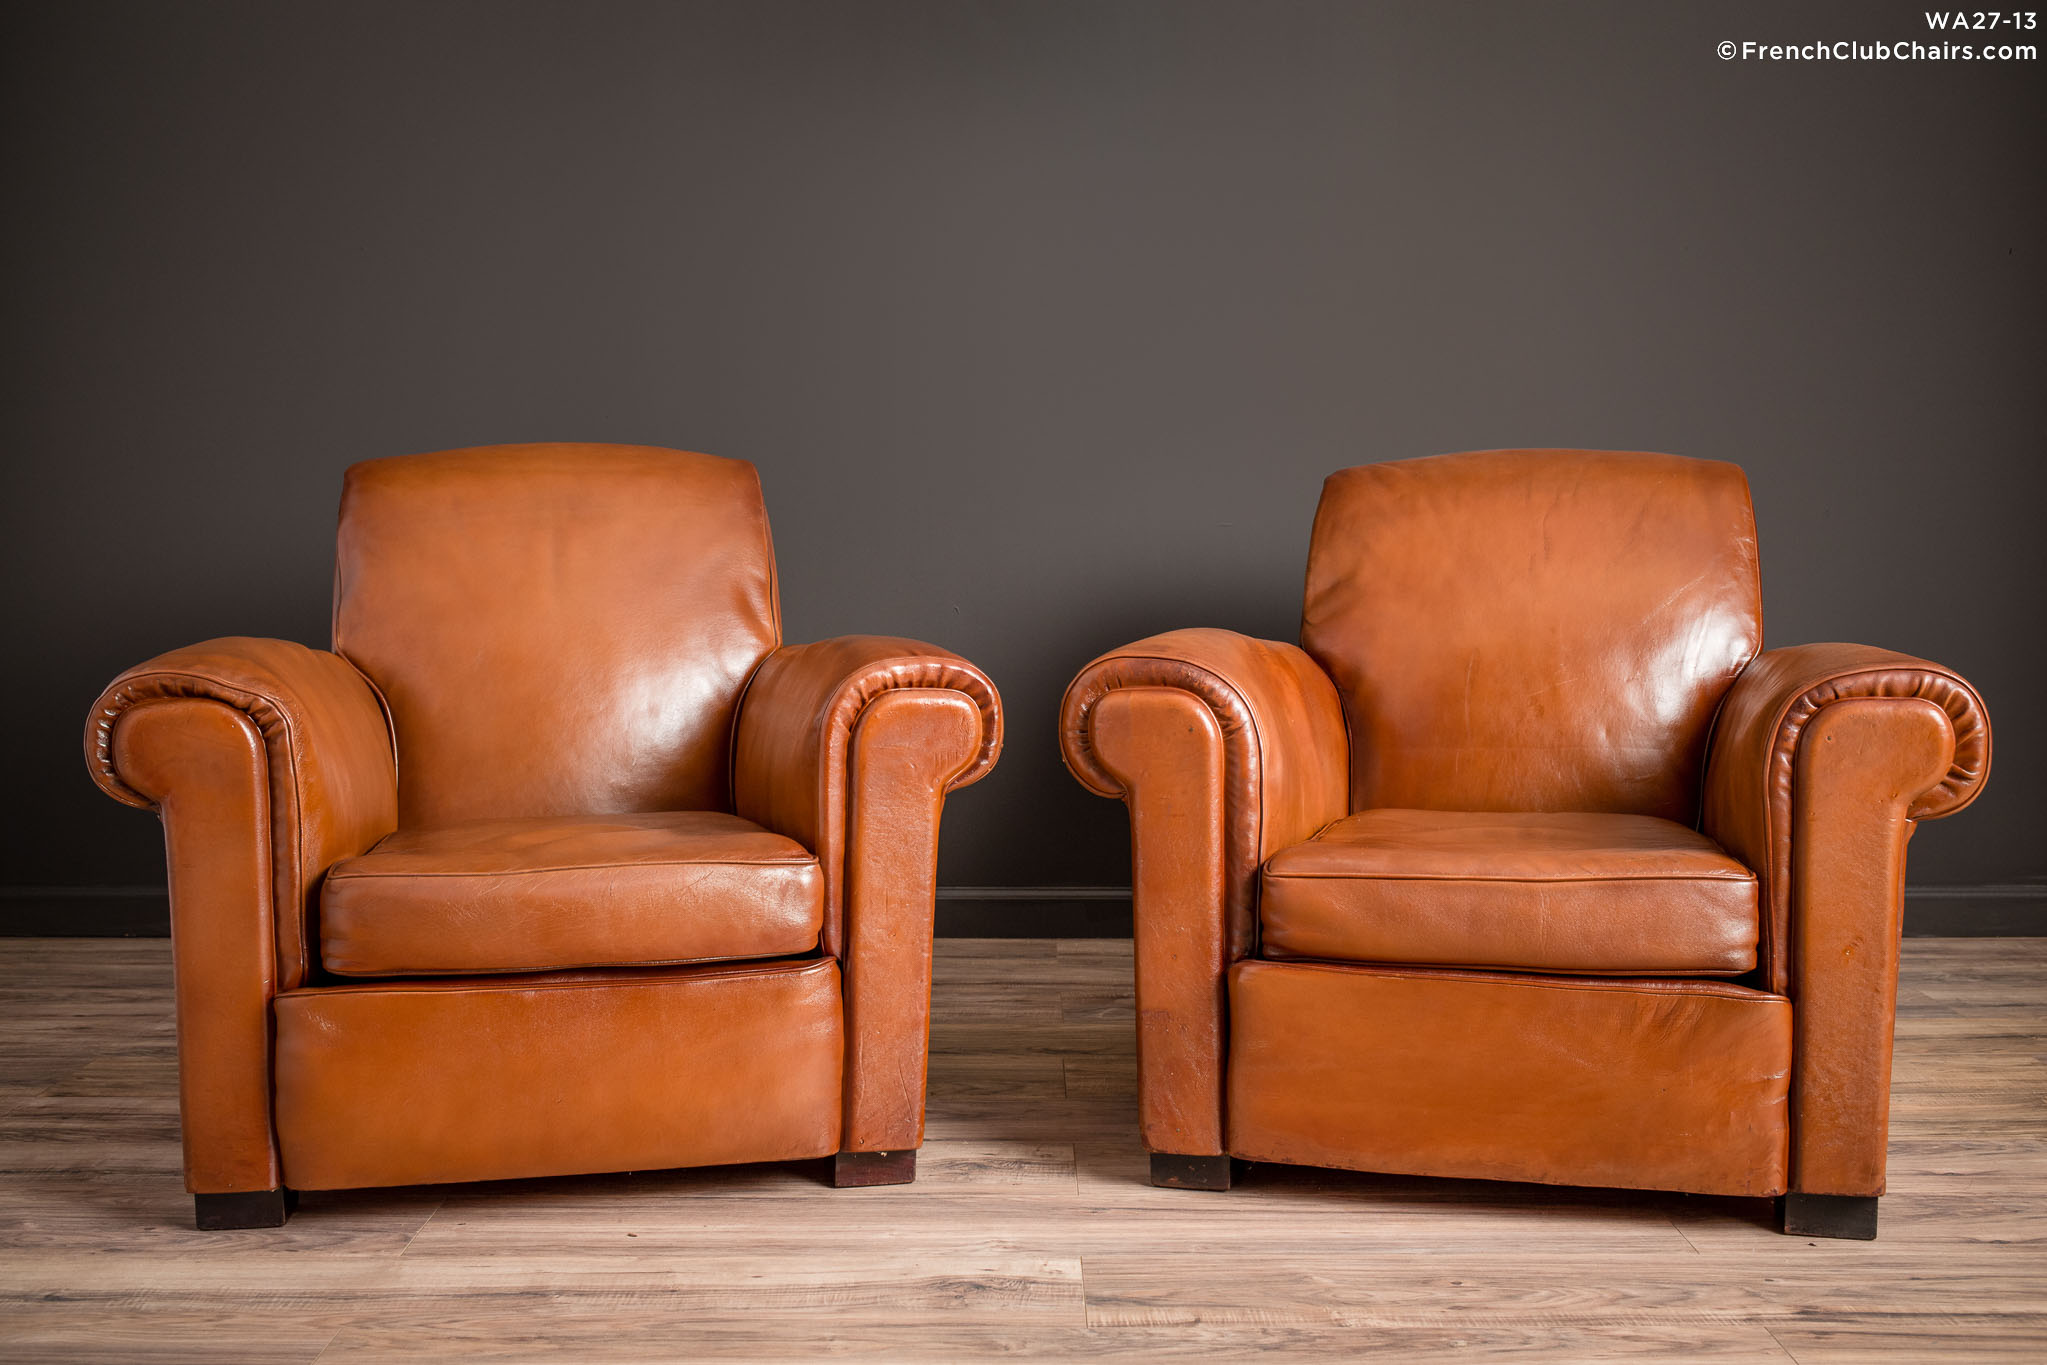 WA_27-13_La_Ministre_Rollback_Lounge_Pair_R_1TQ-v01-williams-antiks-leather-french-club-chair-wa_fcccom